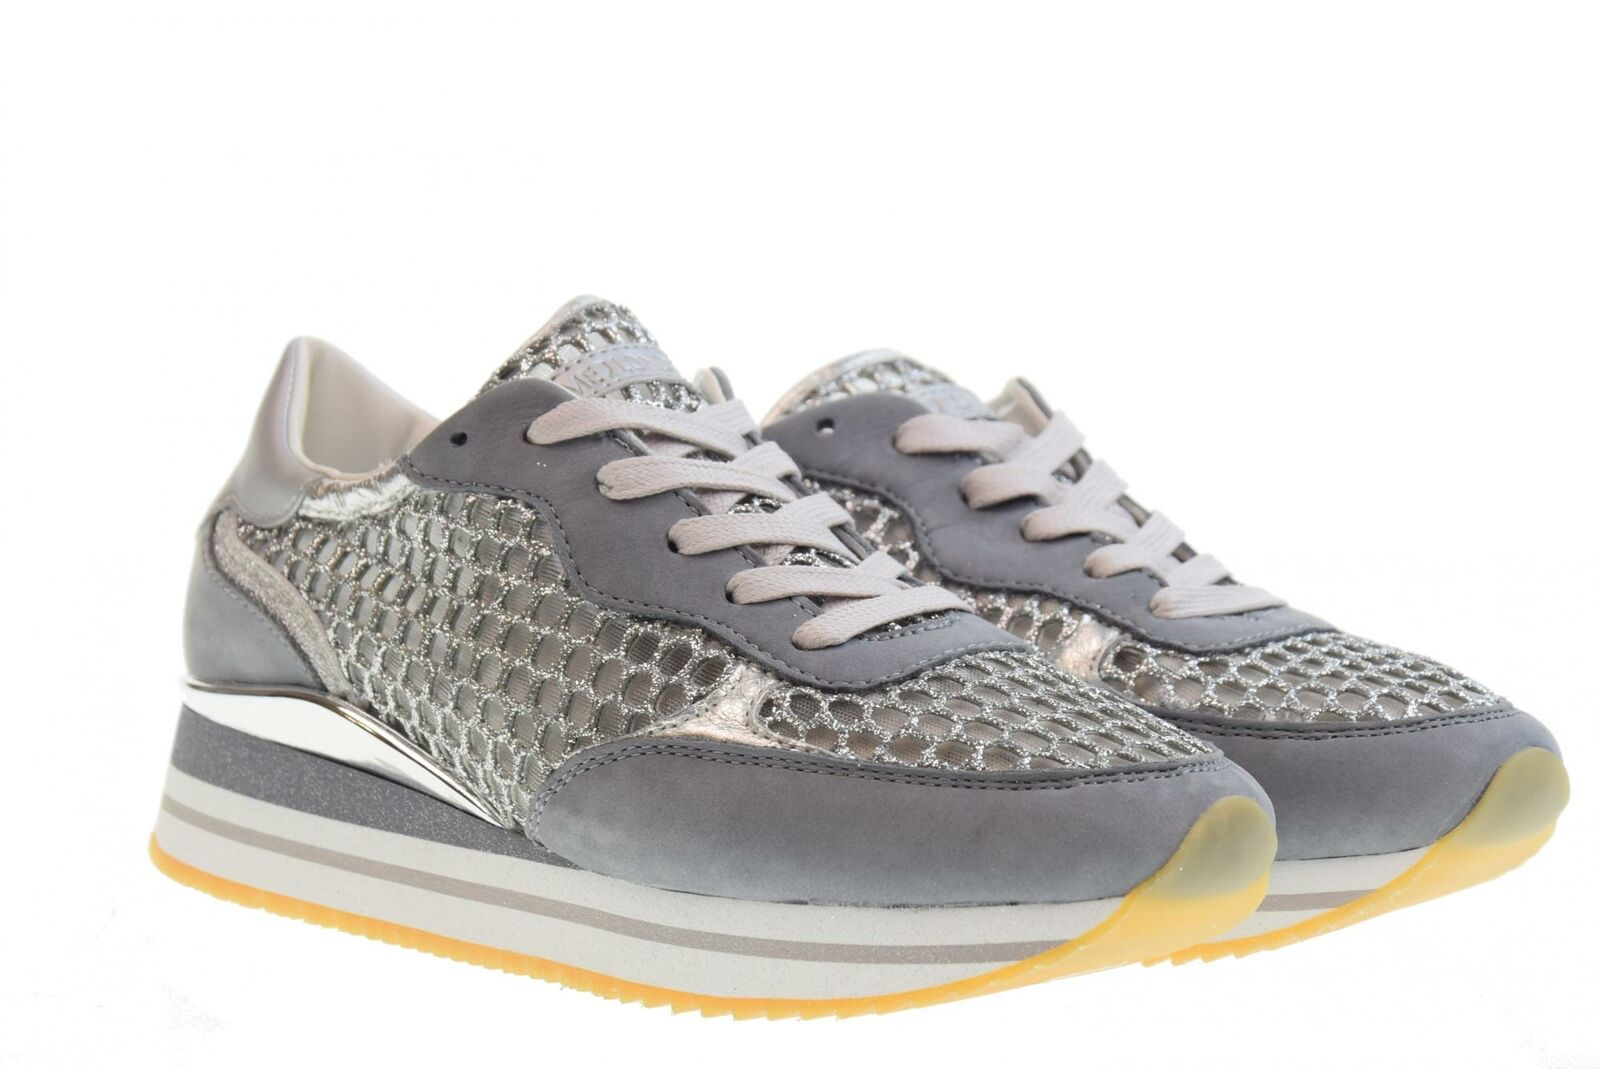 Crime p19f womens sneakers 25555pp1.25 dynamic